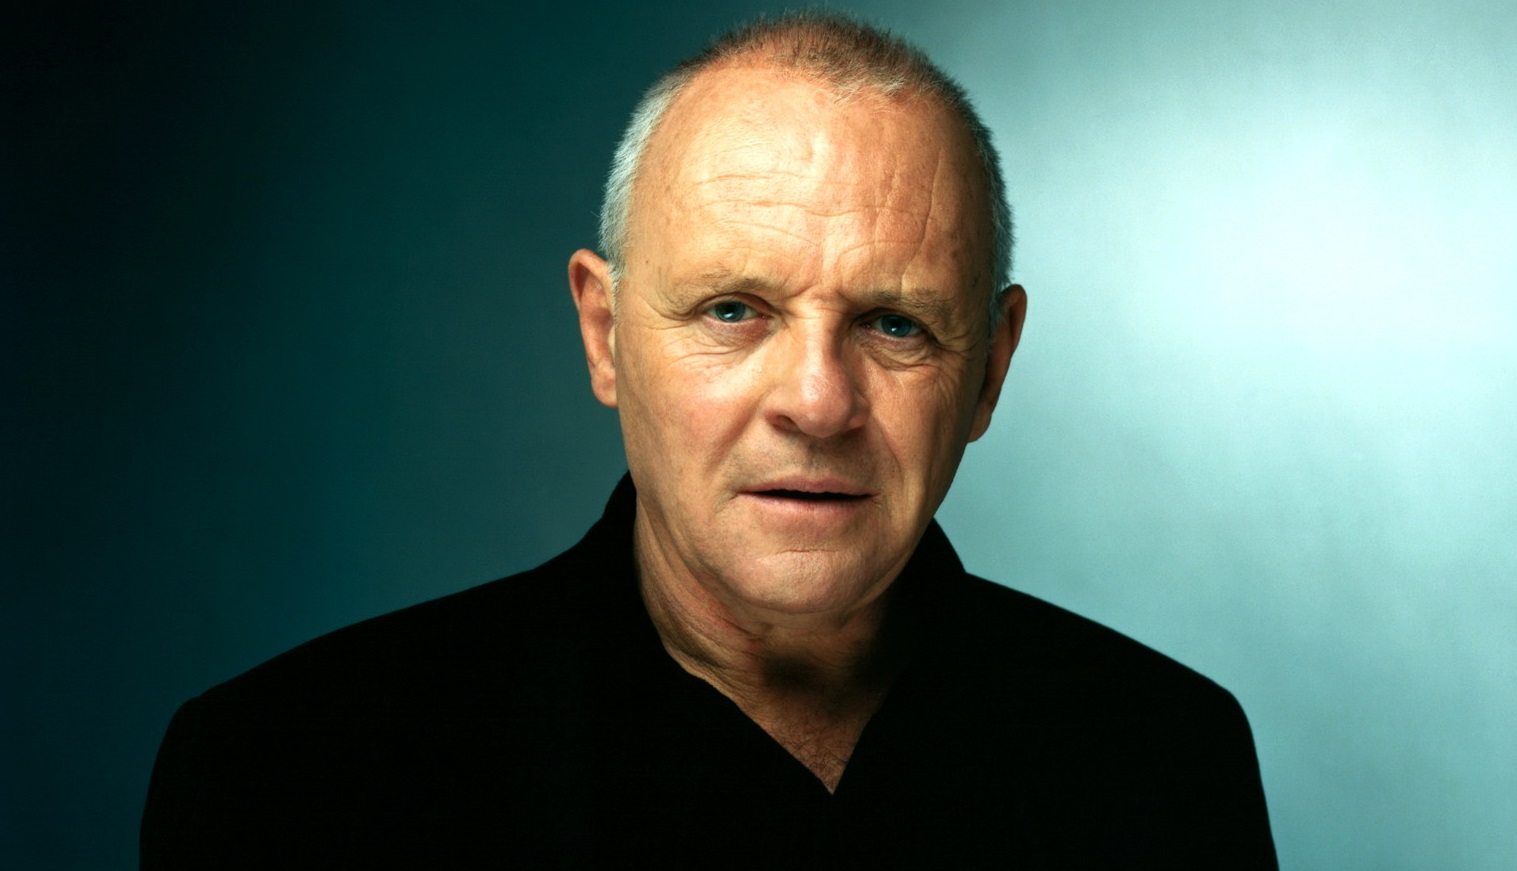 Anthony Hopkins actor